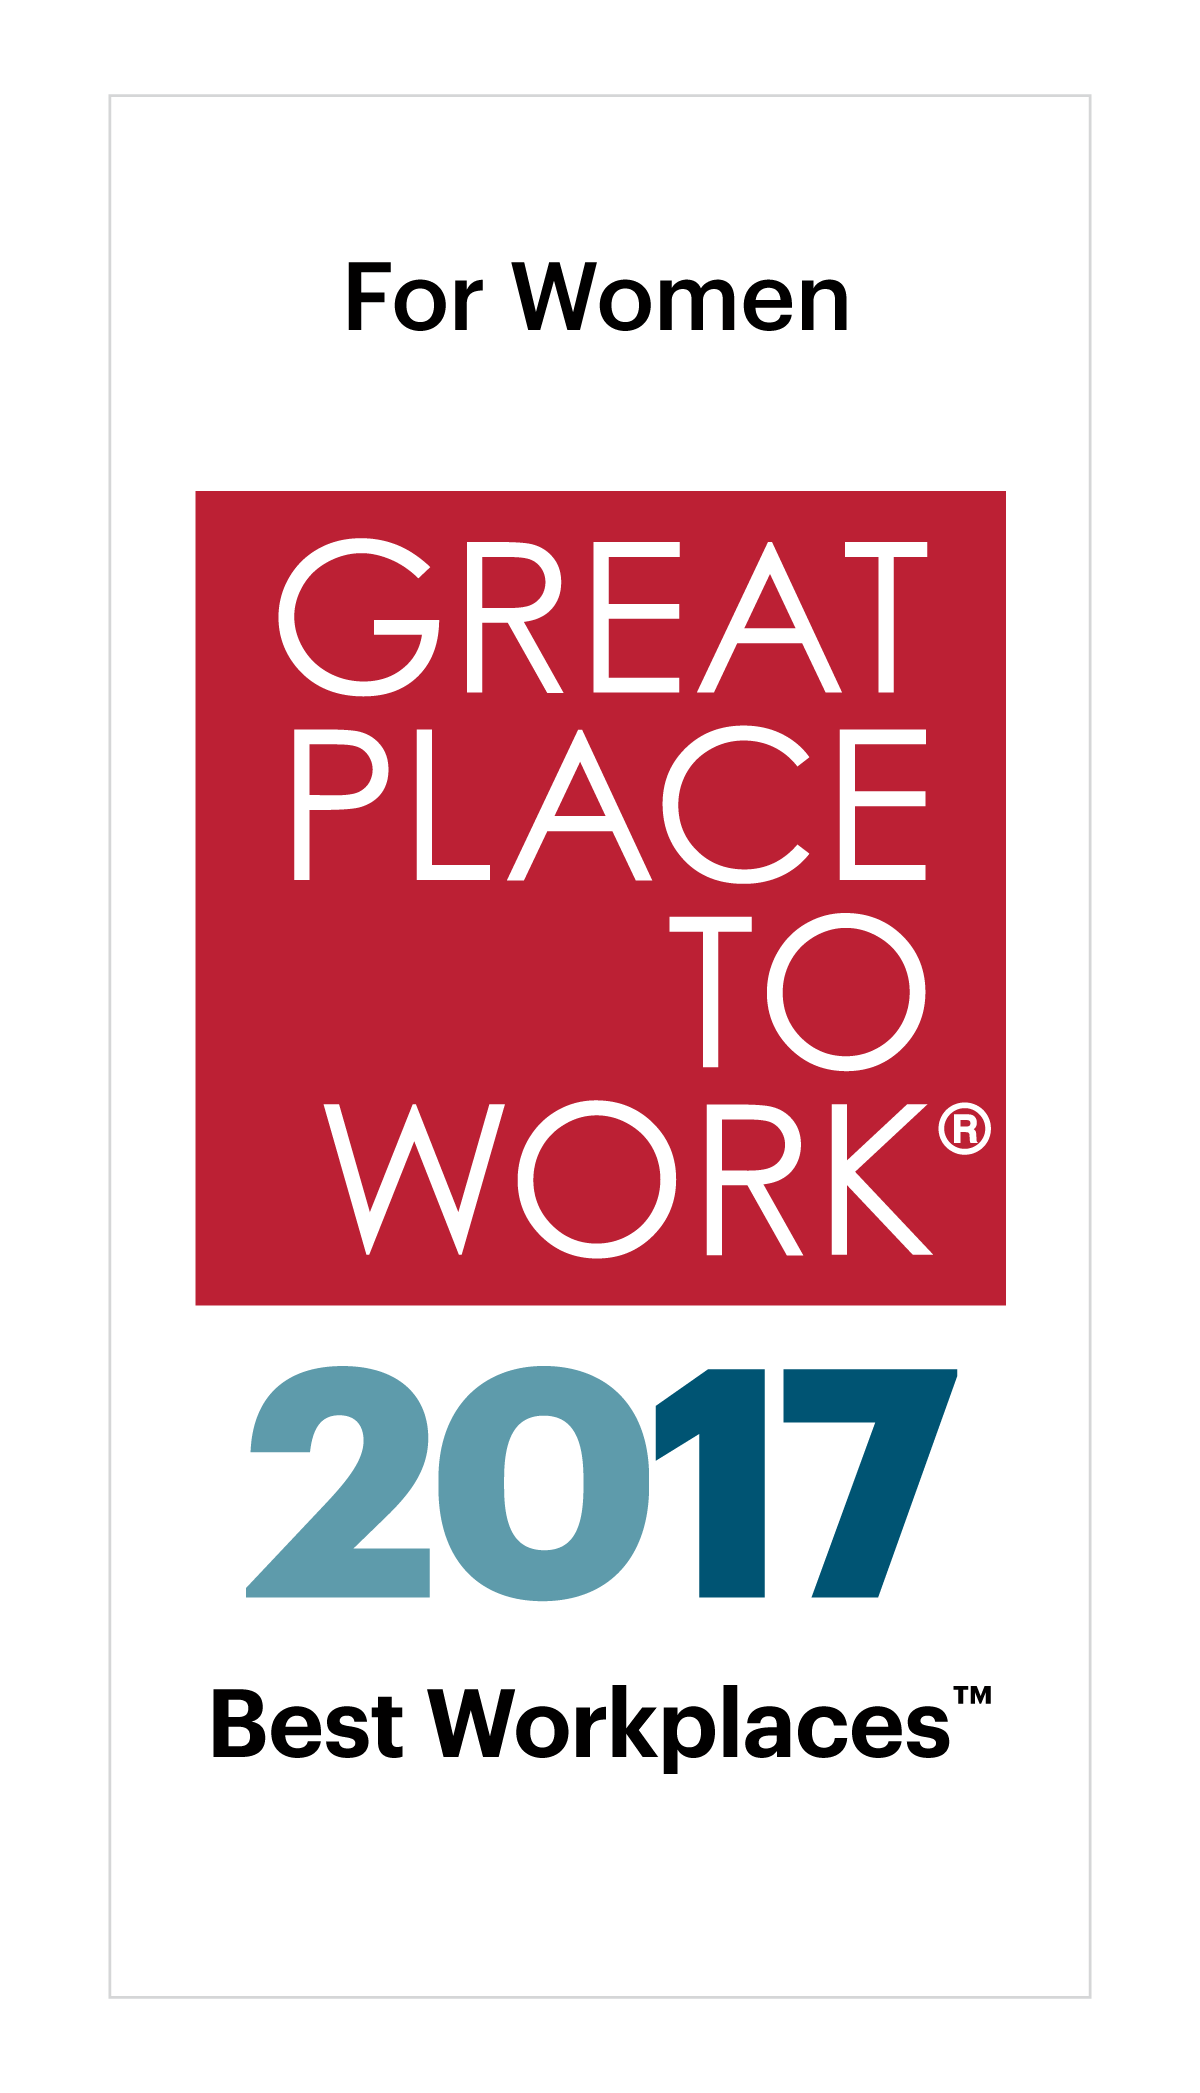 FORTUNE's 100 Best Workplaces for Women list